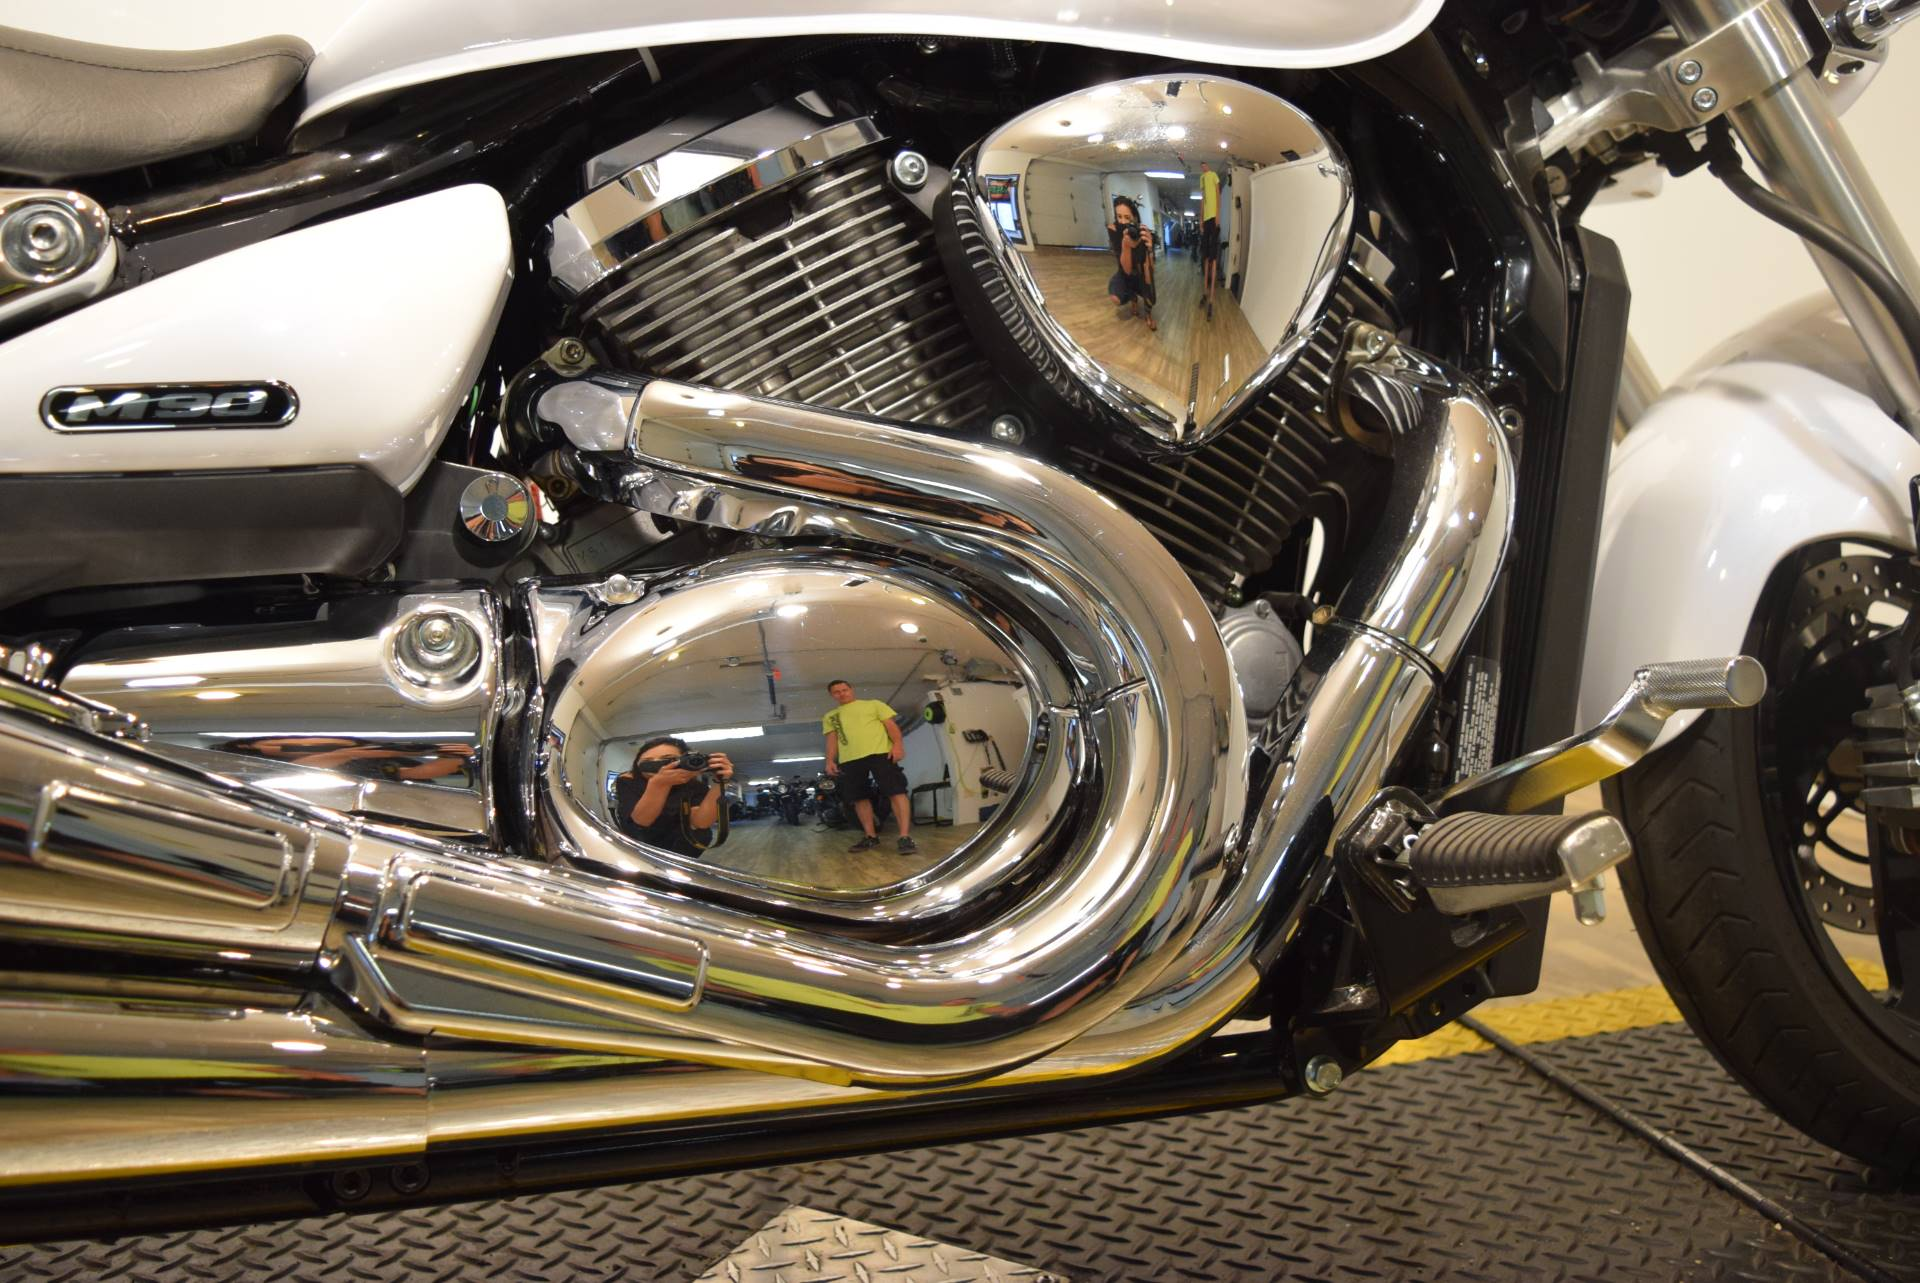 2015 Suzuki Boulevard M90 in Wauconda, Illinois - Photo 5